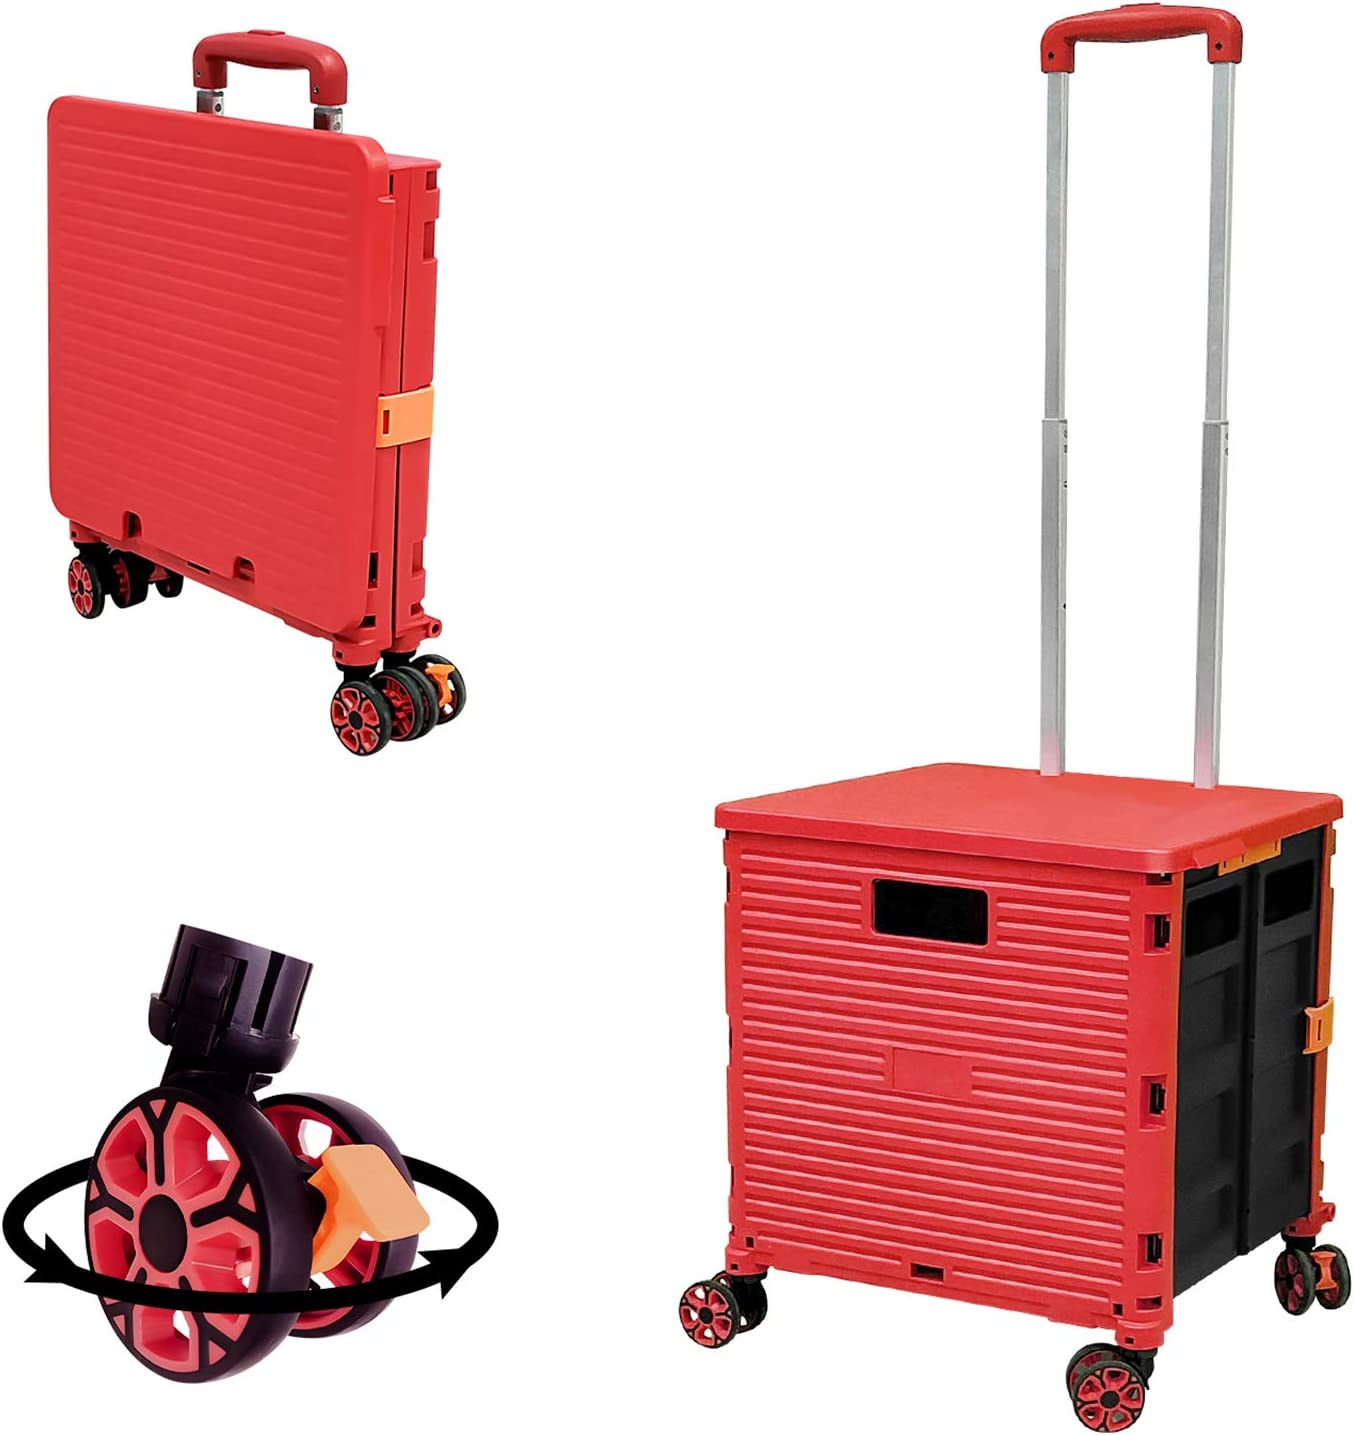 Folding Portable Rolling Crate Handcart Heavy Duty Handle for Travel Shopping